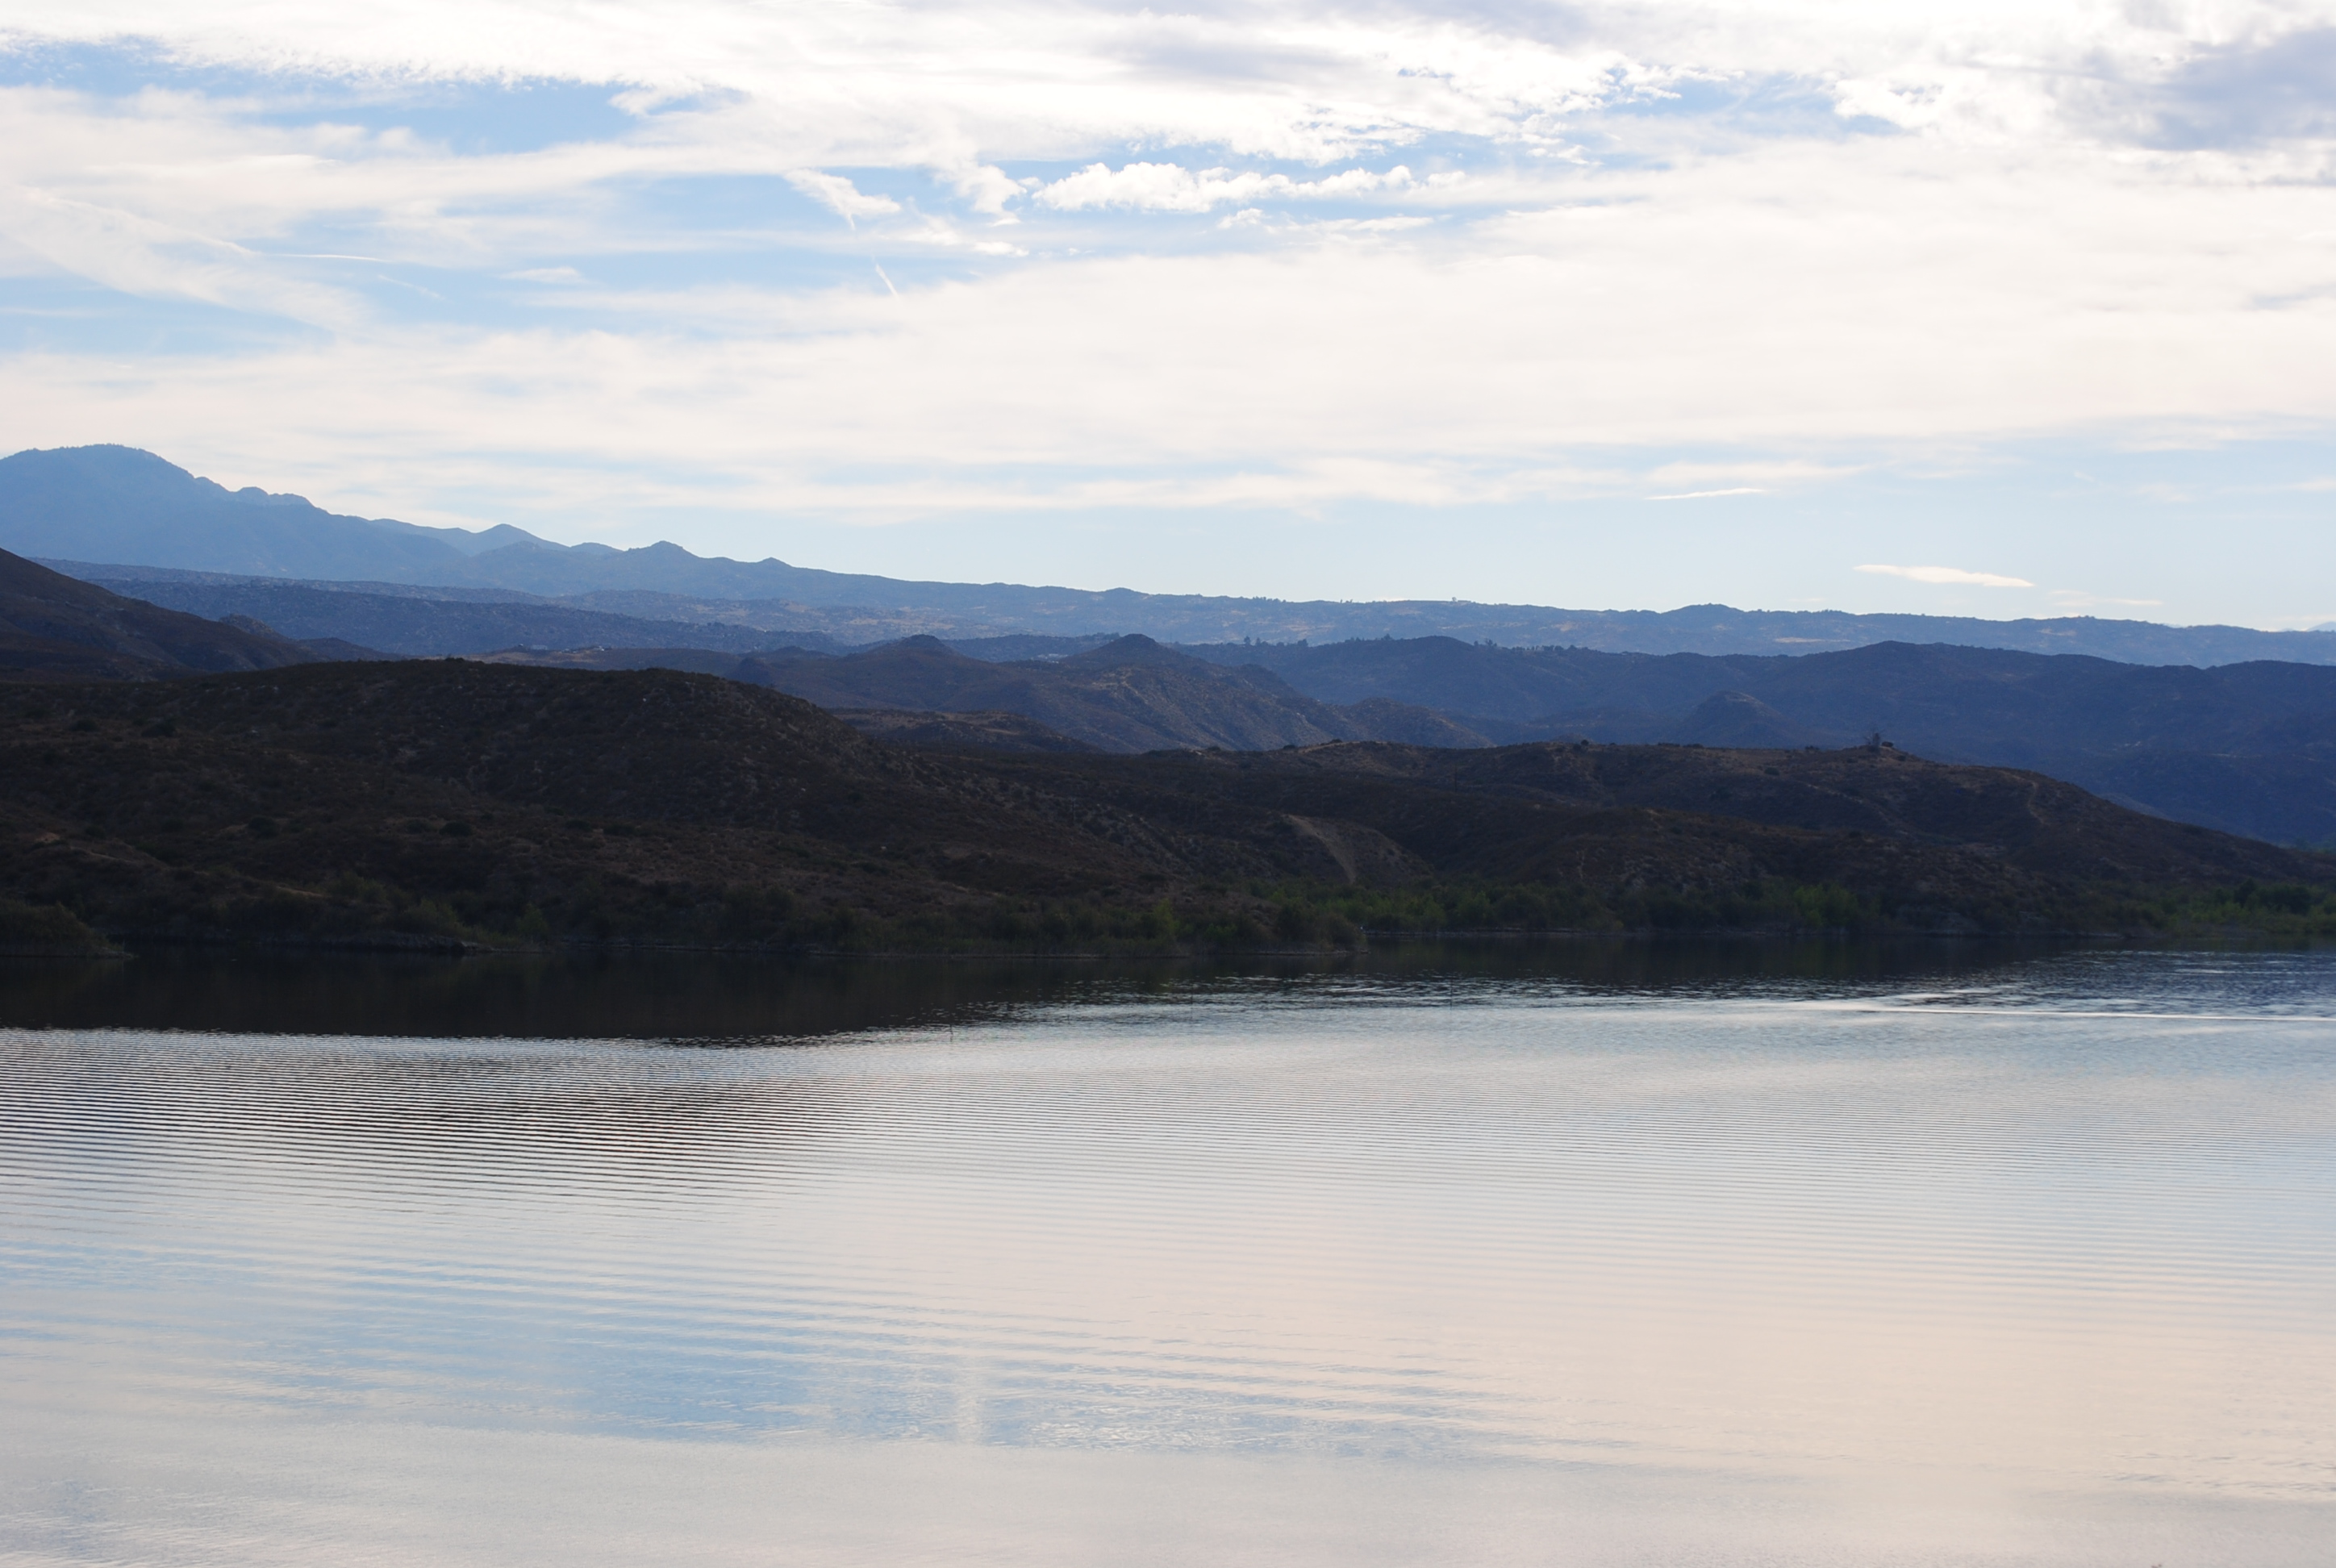 Image of Vail lake with the mountains